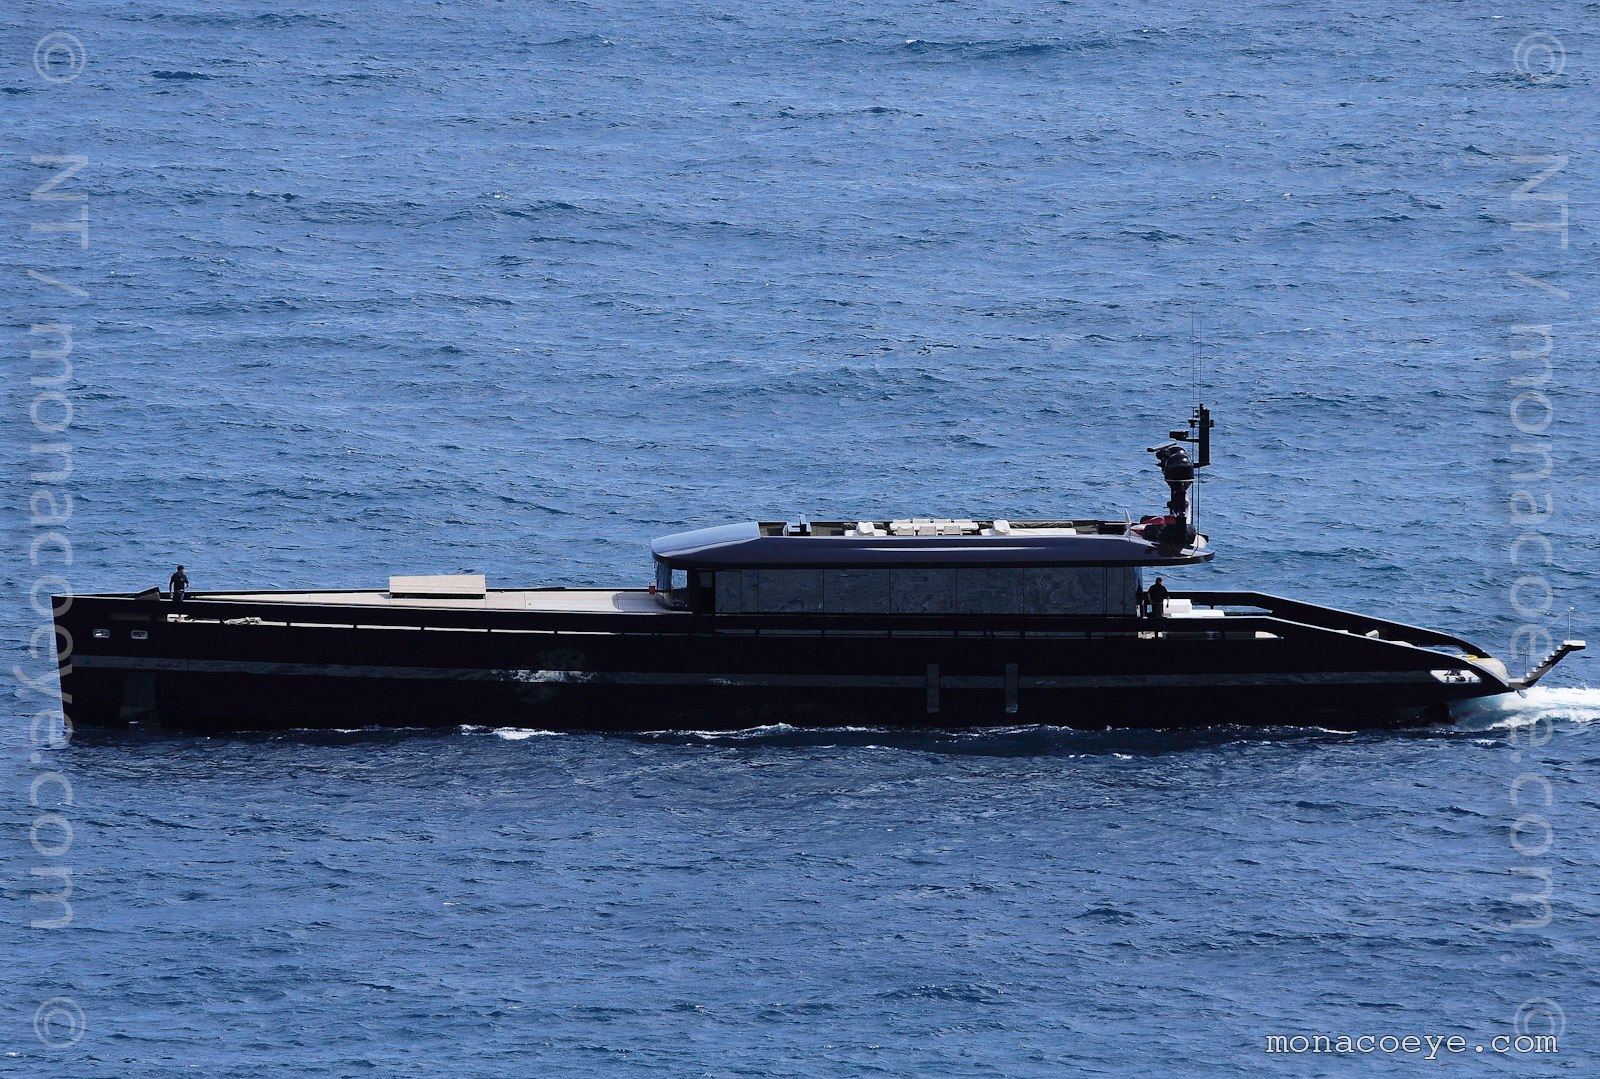 H2Ome - the new 45m gas turbine yacht from MMGI. H2Ome has a top speed of 40 knots (75 kmph), a range of 1000 nautical miles at 18 knots, an aluminium hull and can carry 10 passengers and 7 crew. She costs about 150,000 euros per week to charter